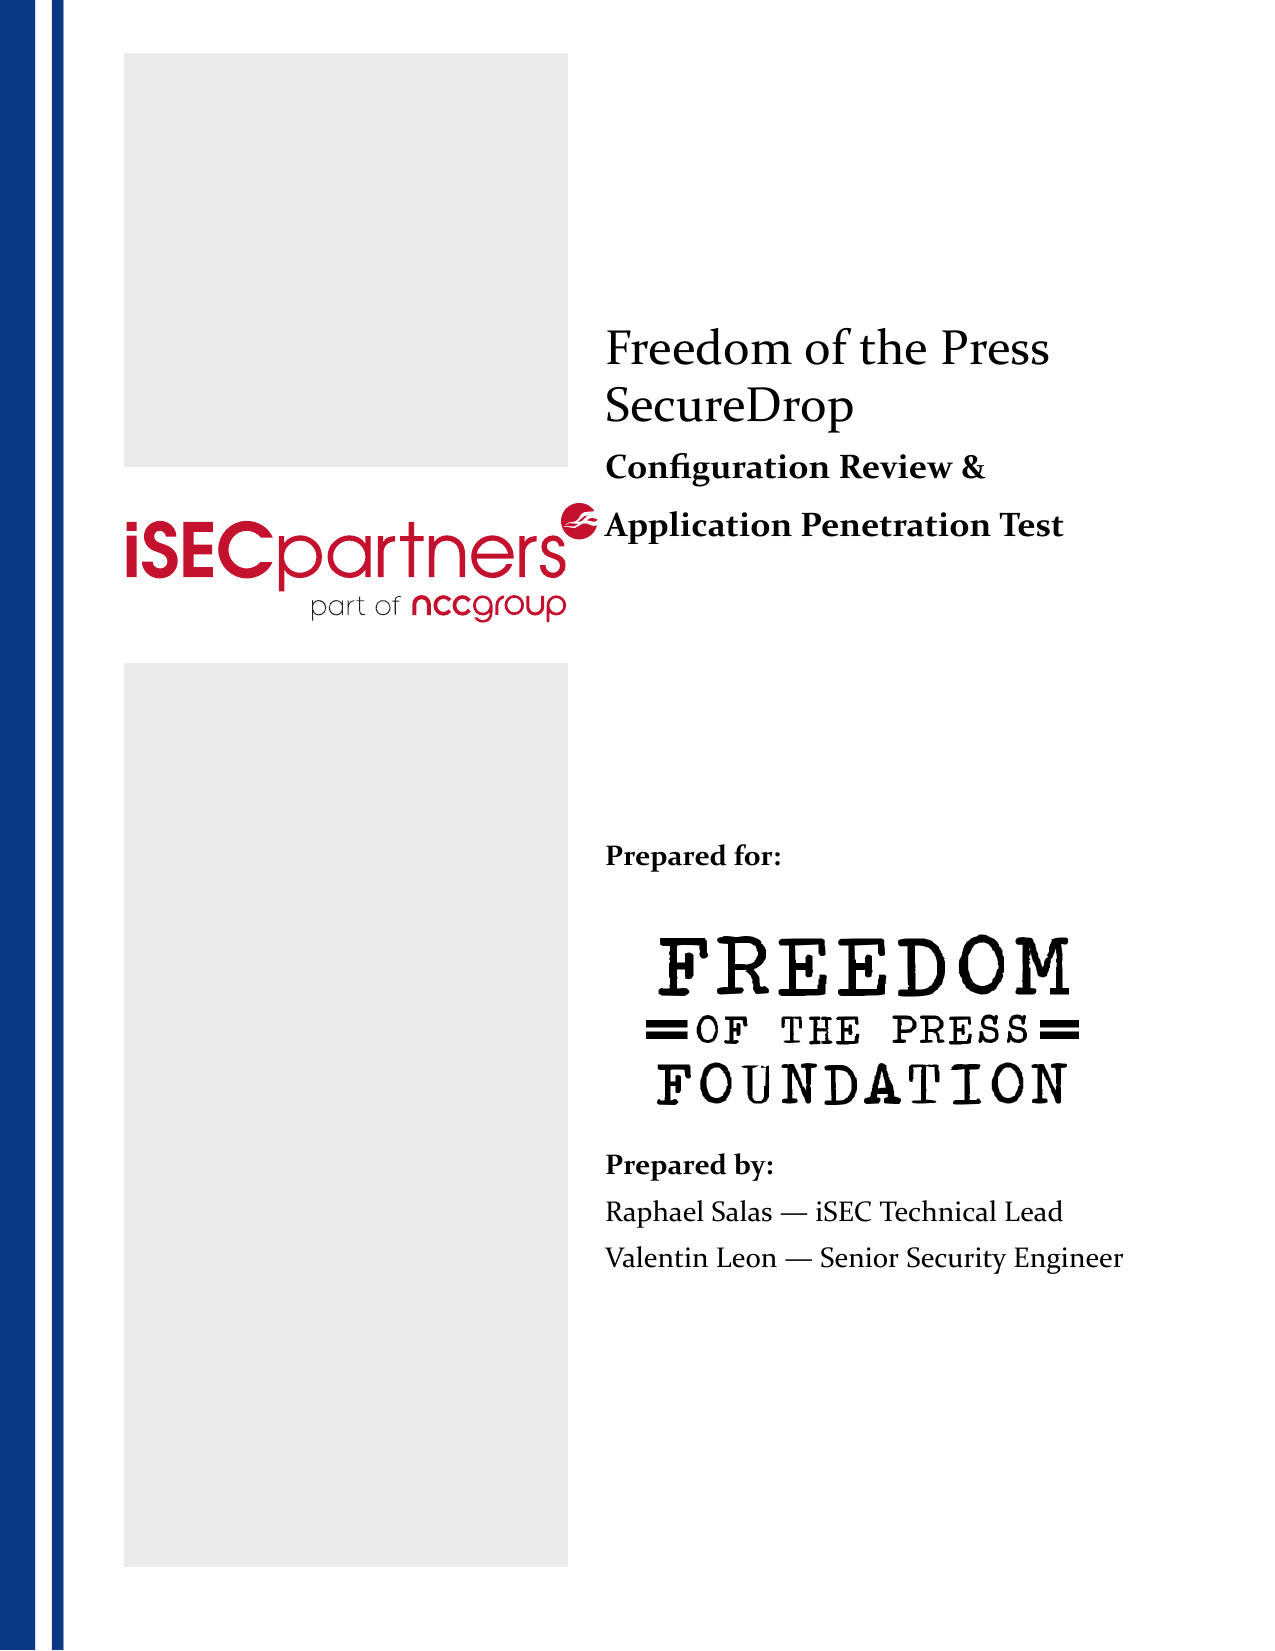 First page of the 'iSEC OTF FPF SecureDrop Deliverable v1.2' PDF